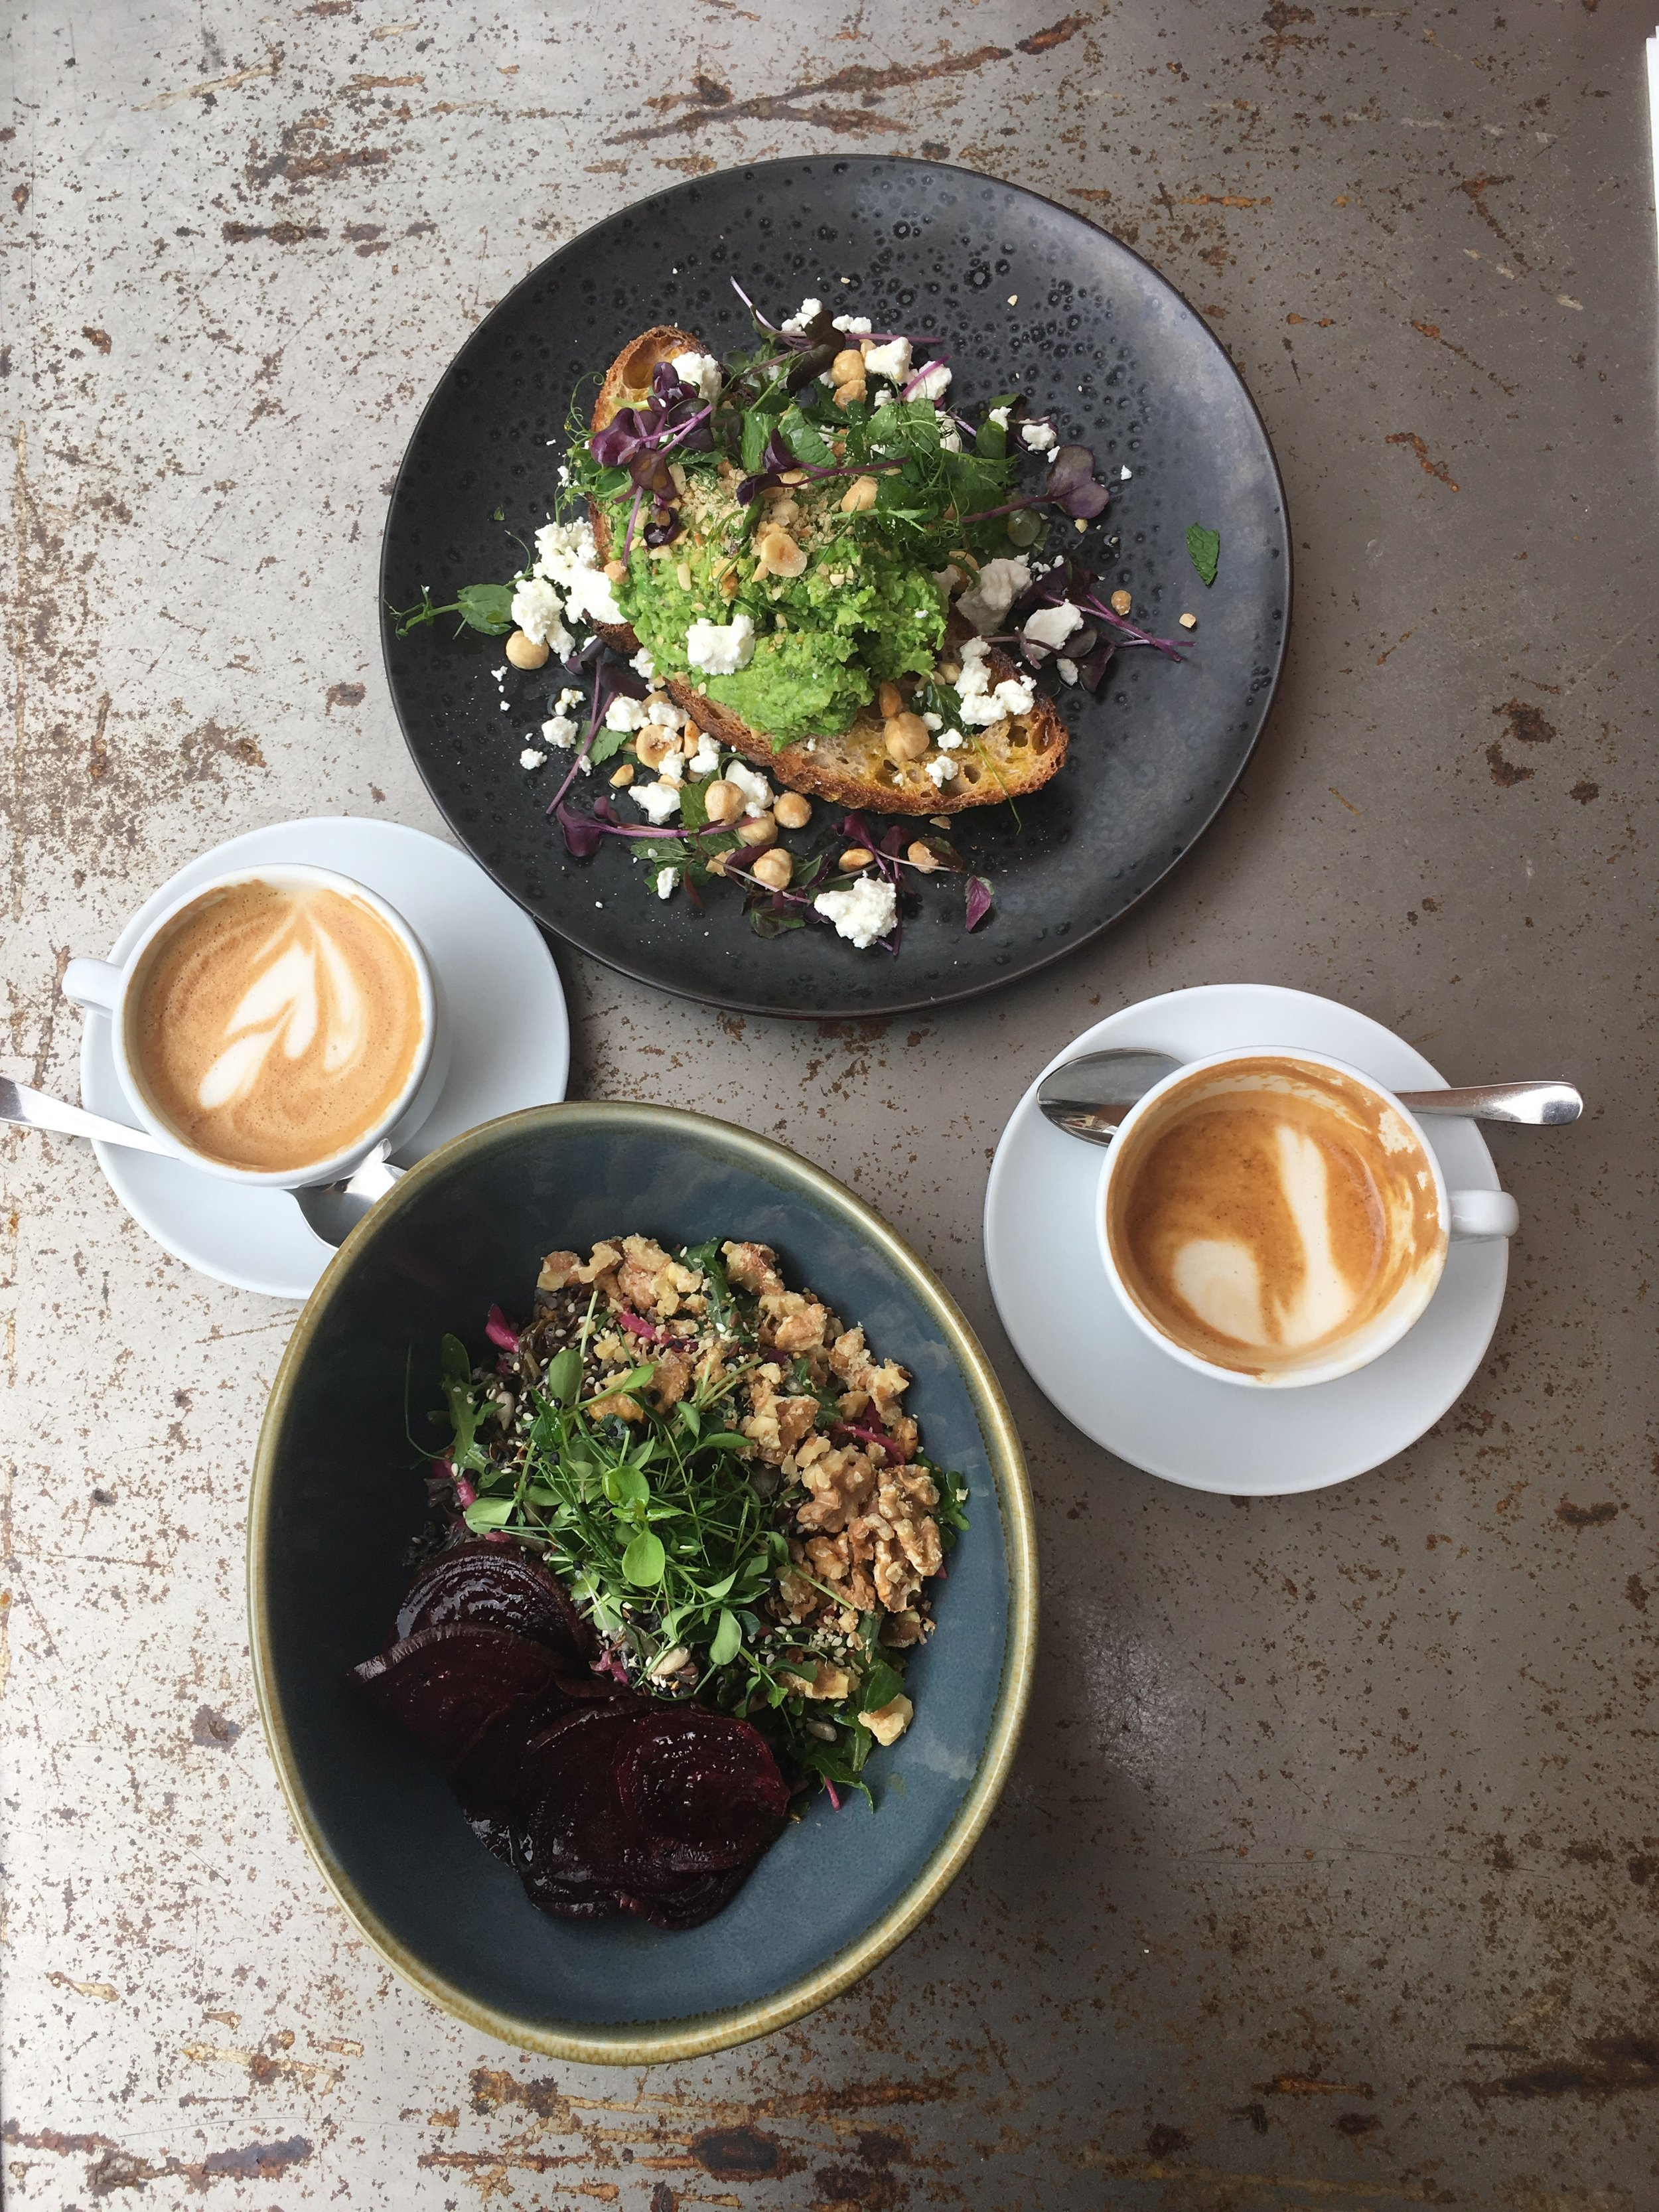 Flat whites and delicious healthy bowls at 19 Grams Berlin.